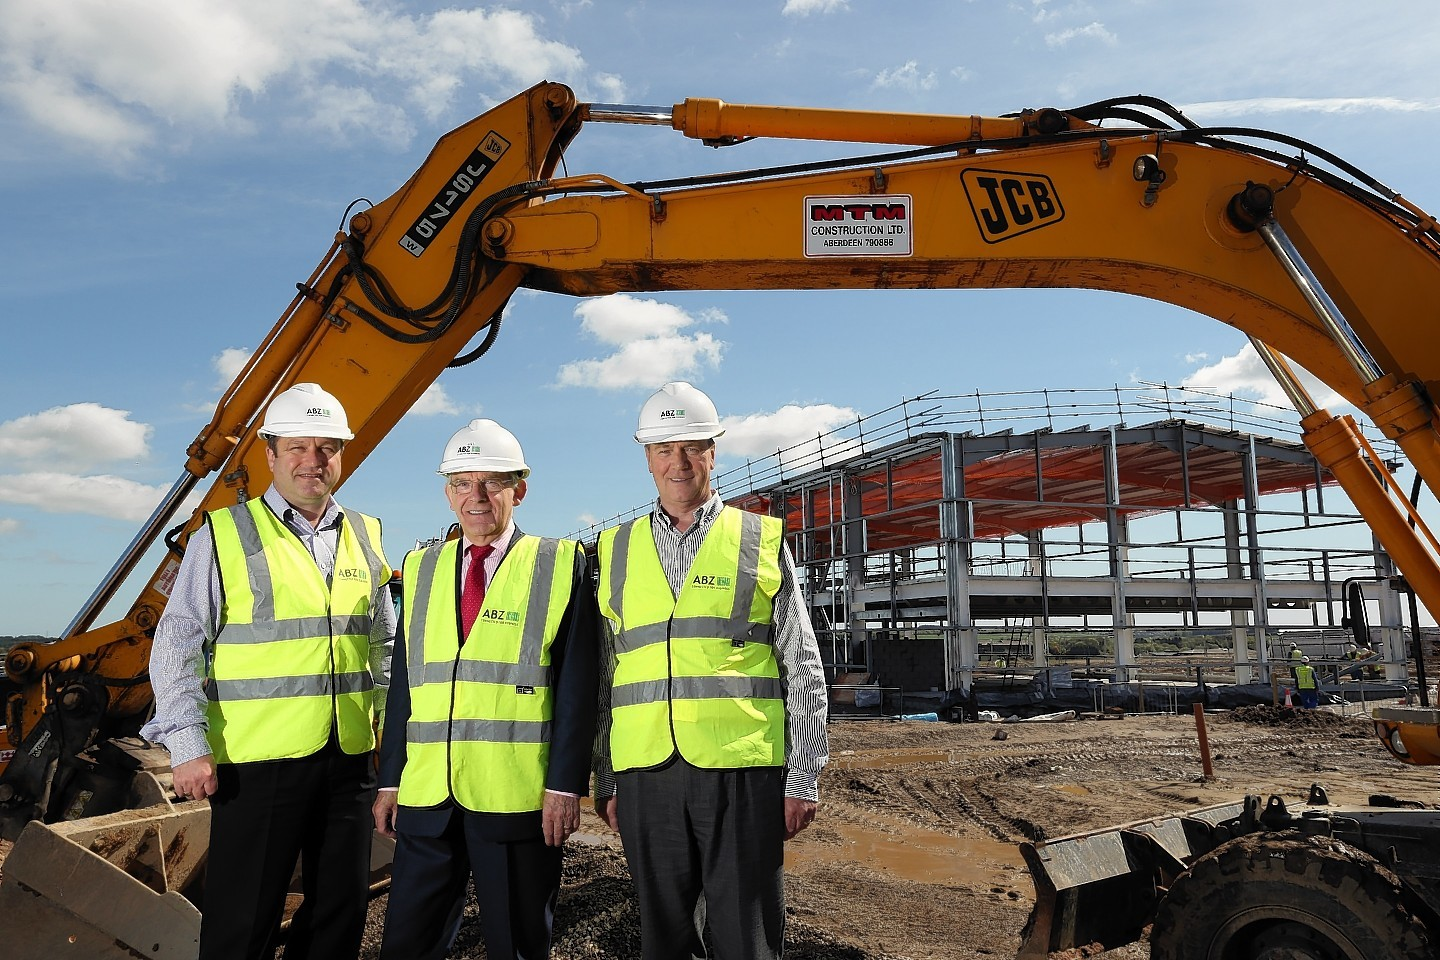 ABZ Development director George Stevenson flanked by (left) ABZ operations director Alasdair MacNeil and AFS manging director Gerry Farrell